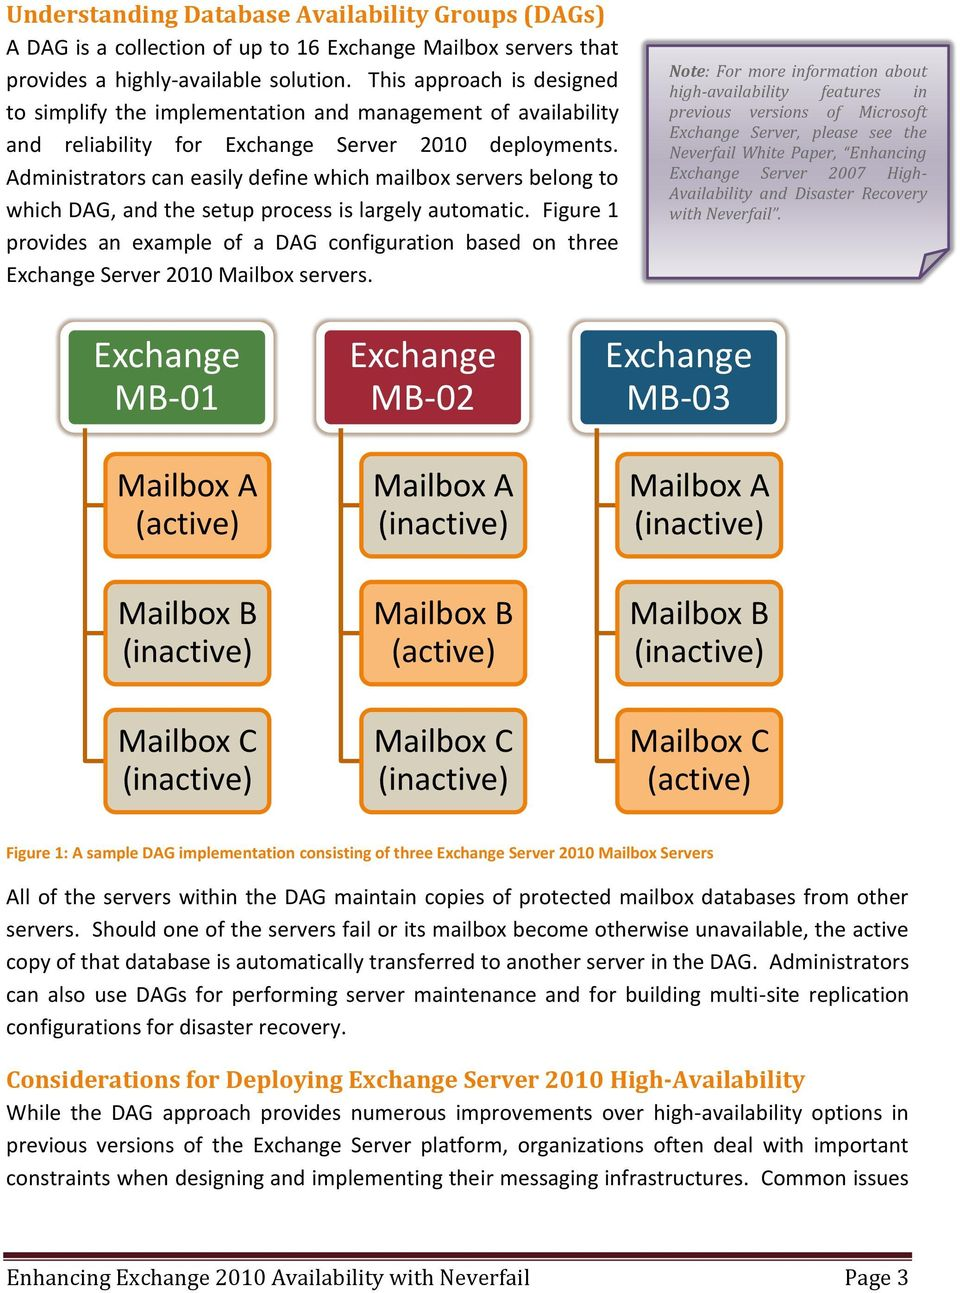 Administrators can easily define which mailbox servers belong to which DAG, and the setup process is largely automatic.